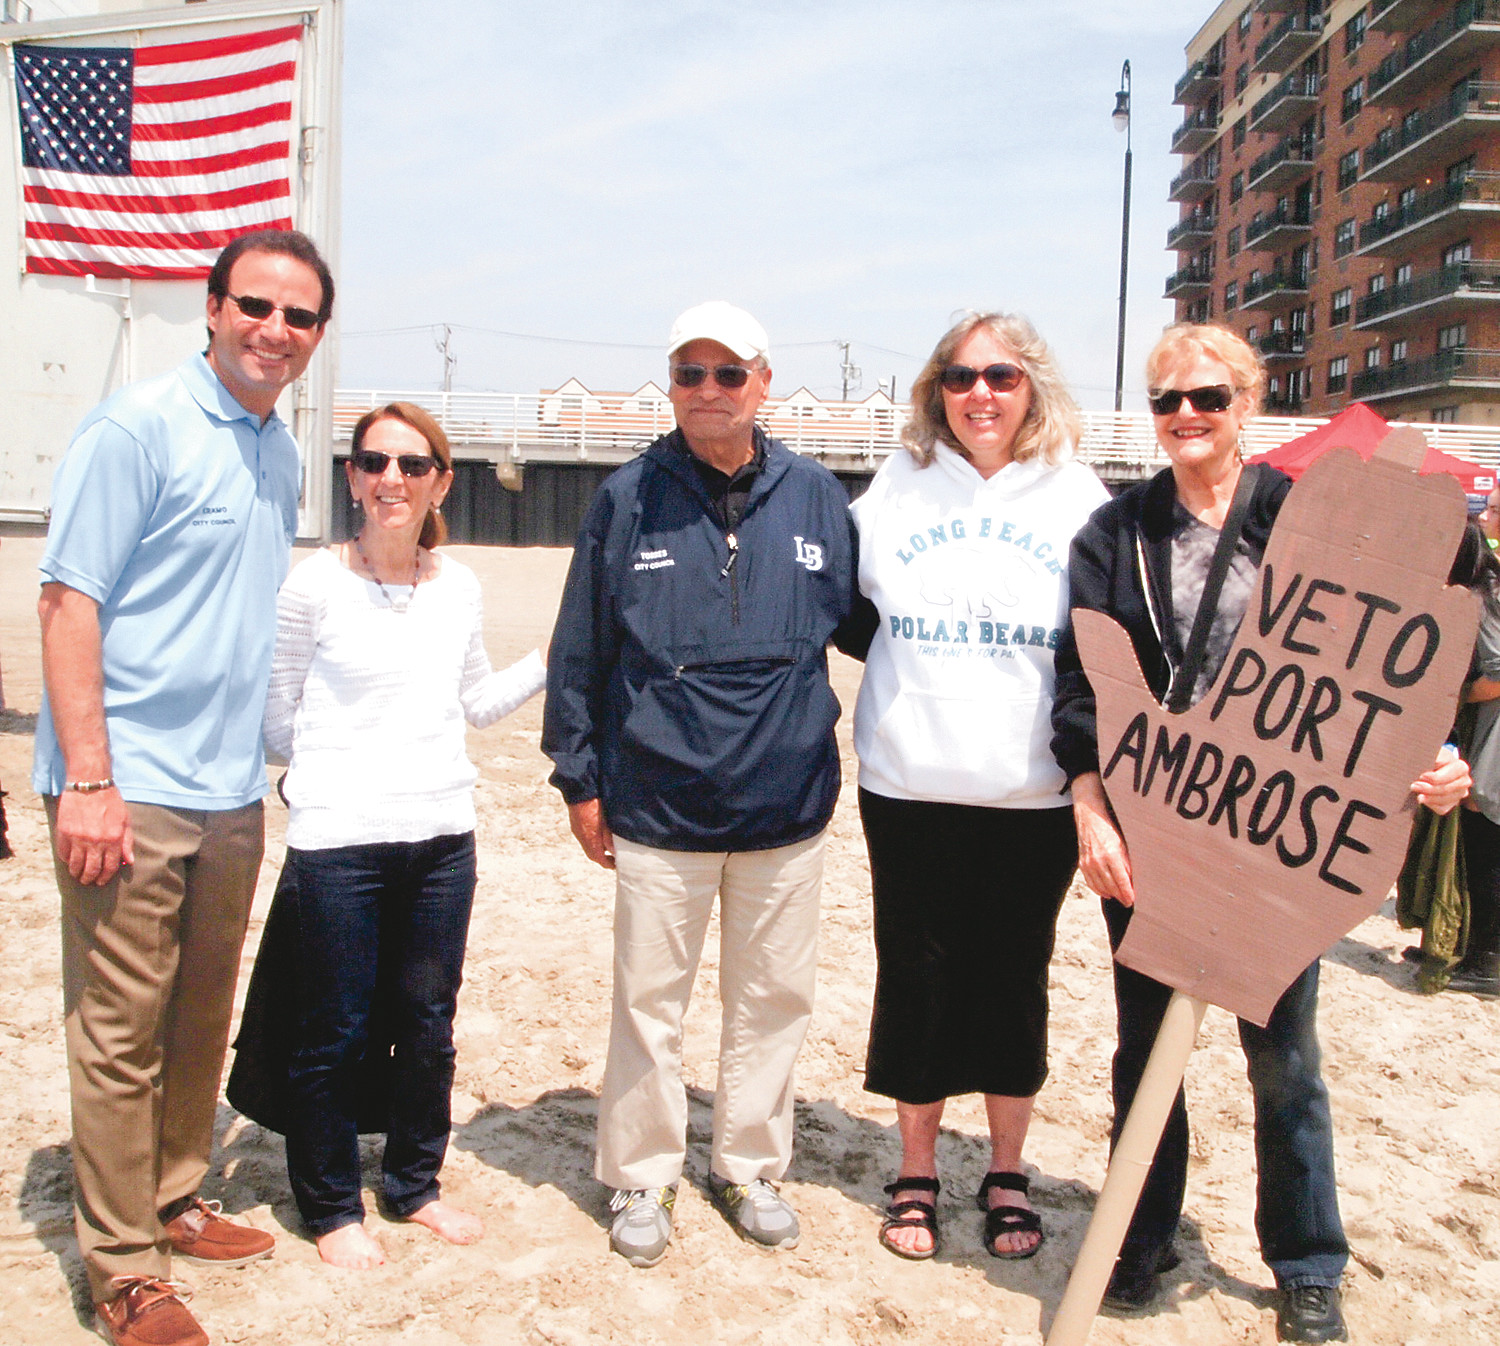 City Council member Anthony Eramo, left, Council Vice President Fran Adelson, Council President Len Torres, County Legislator Denise Ford and Johanna Mathieson or Artists-in-Partnership, Inc. protested the proposed LNG facility.